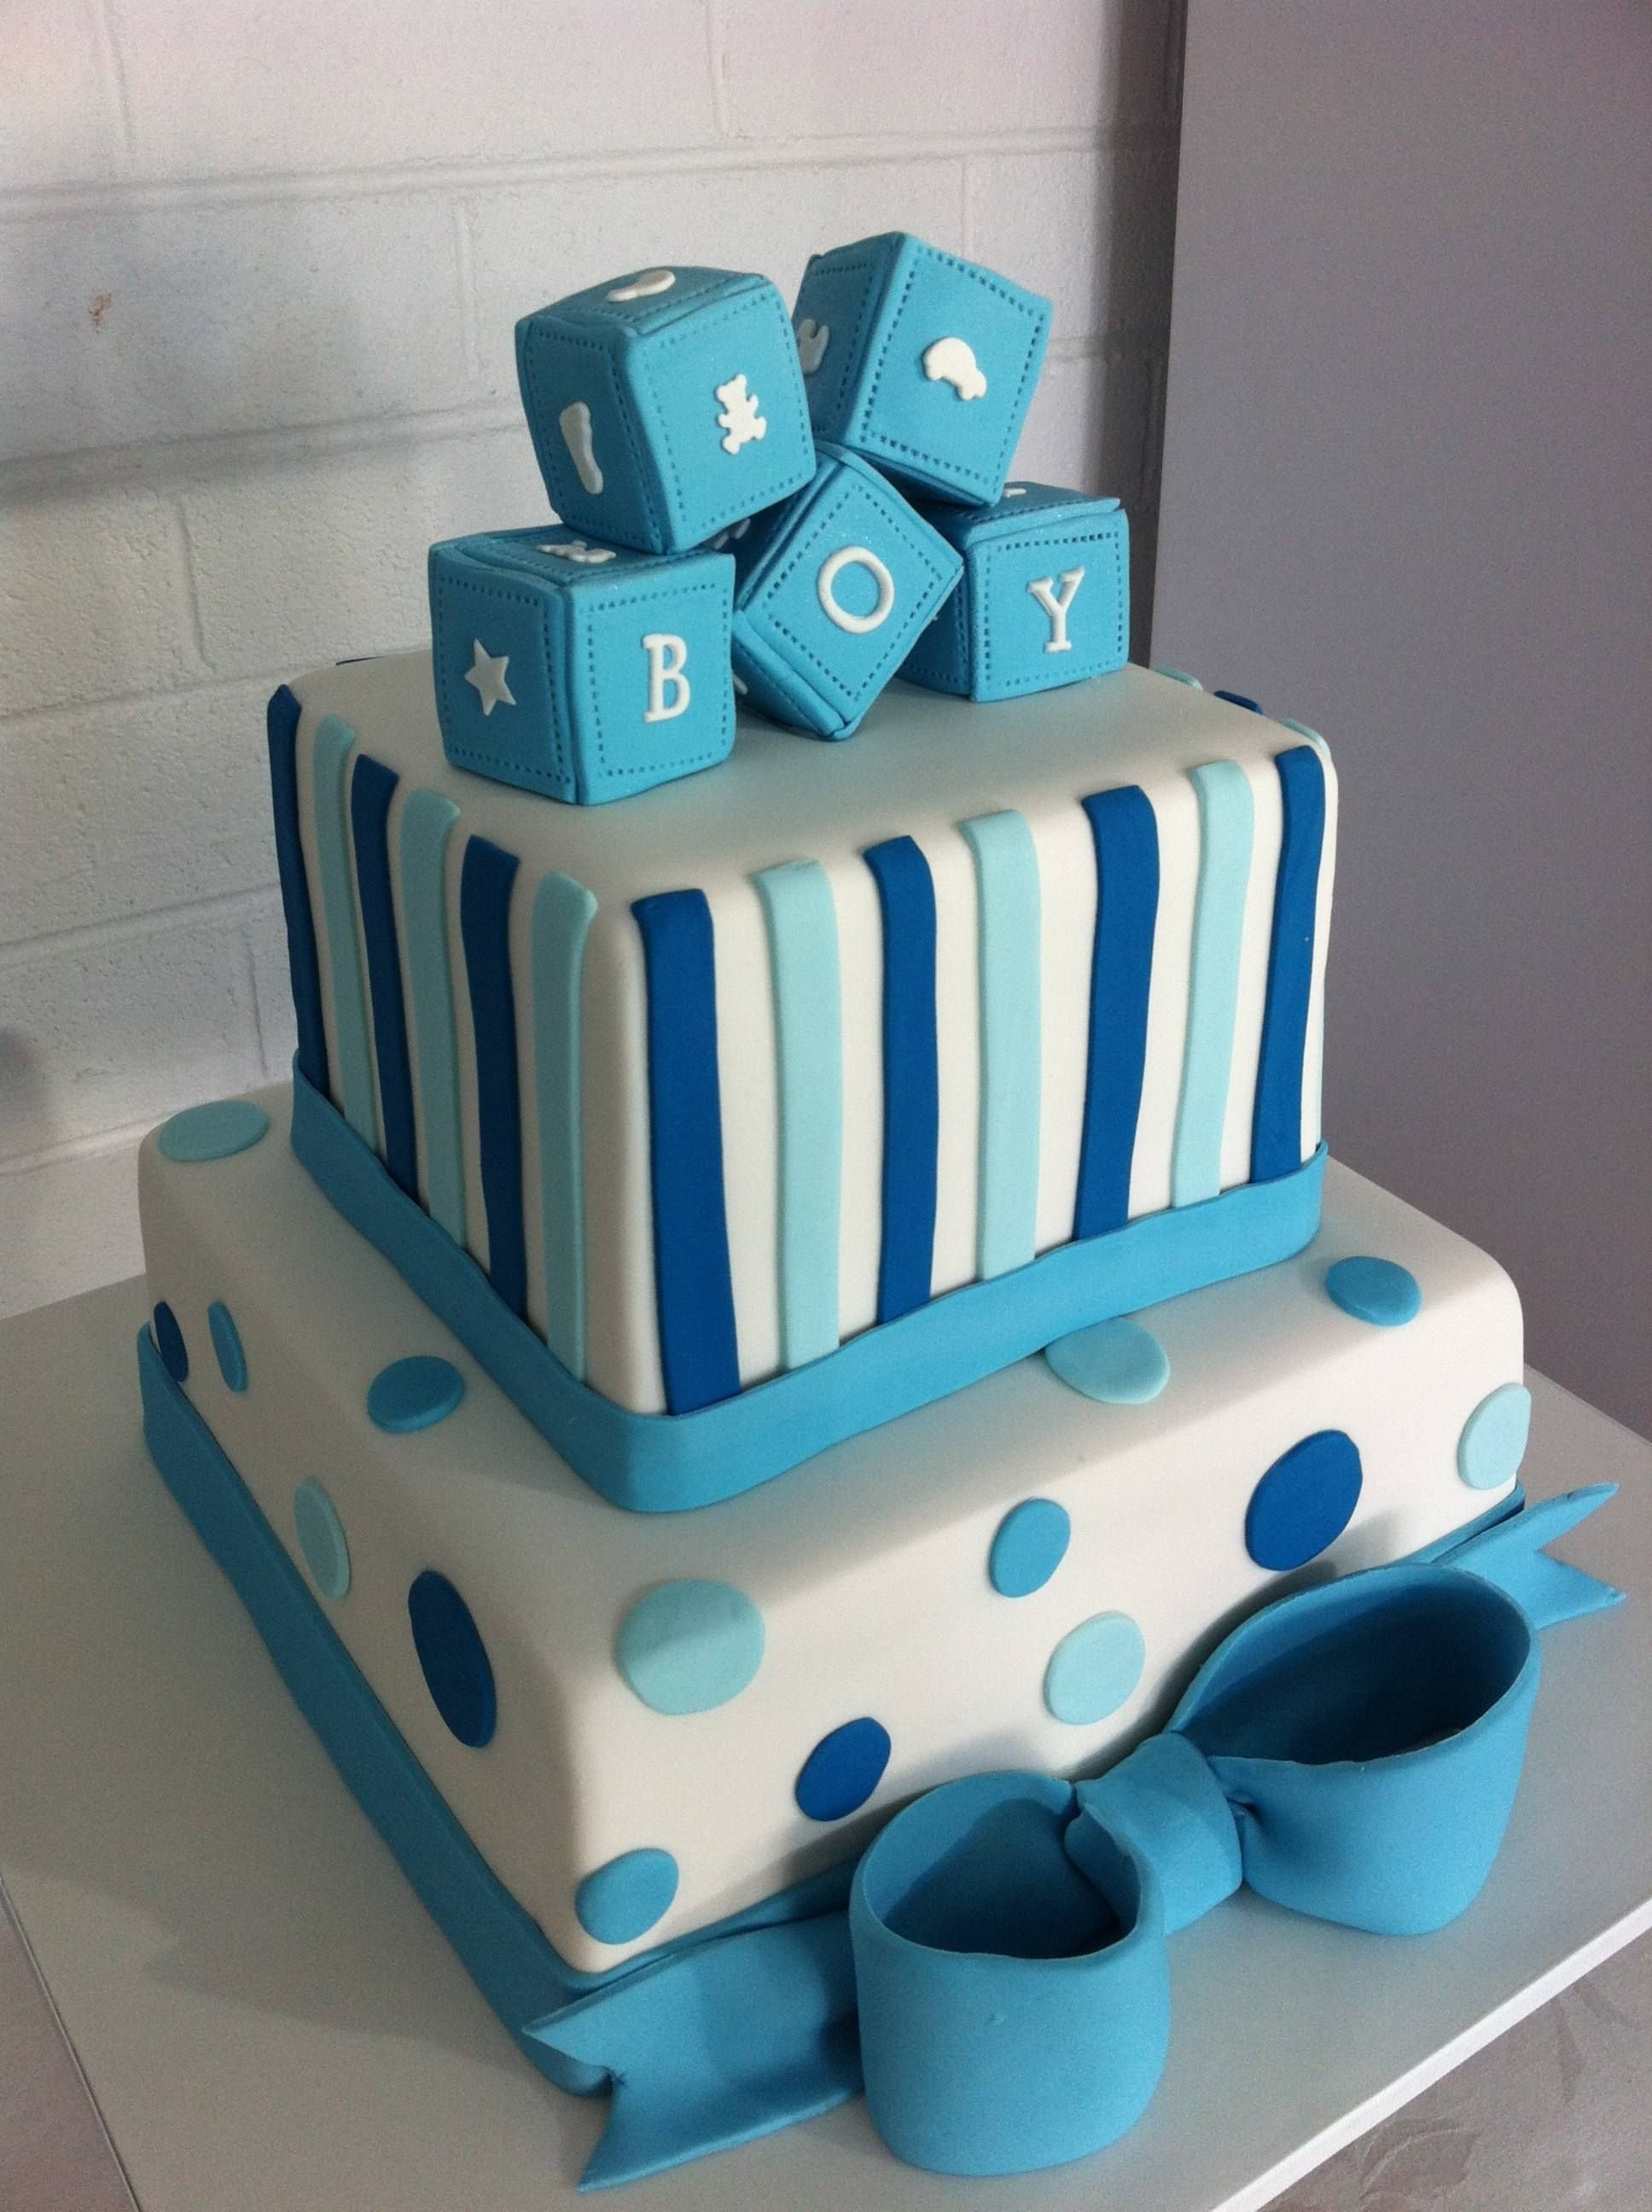 10 Wonderful Ideas For Baby Shower Cakes boy baby shower cakes cakesdesign our new creations other 2020